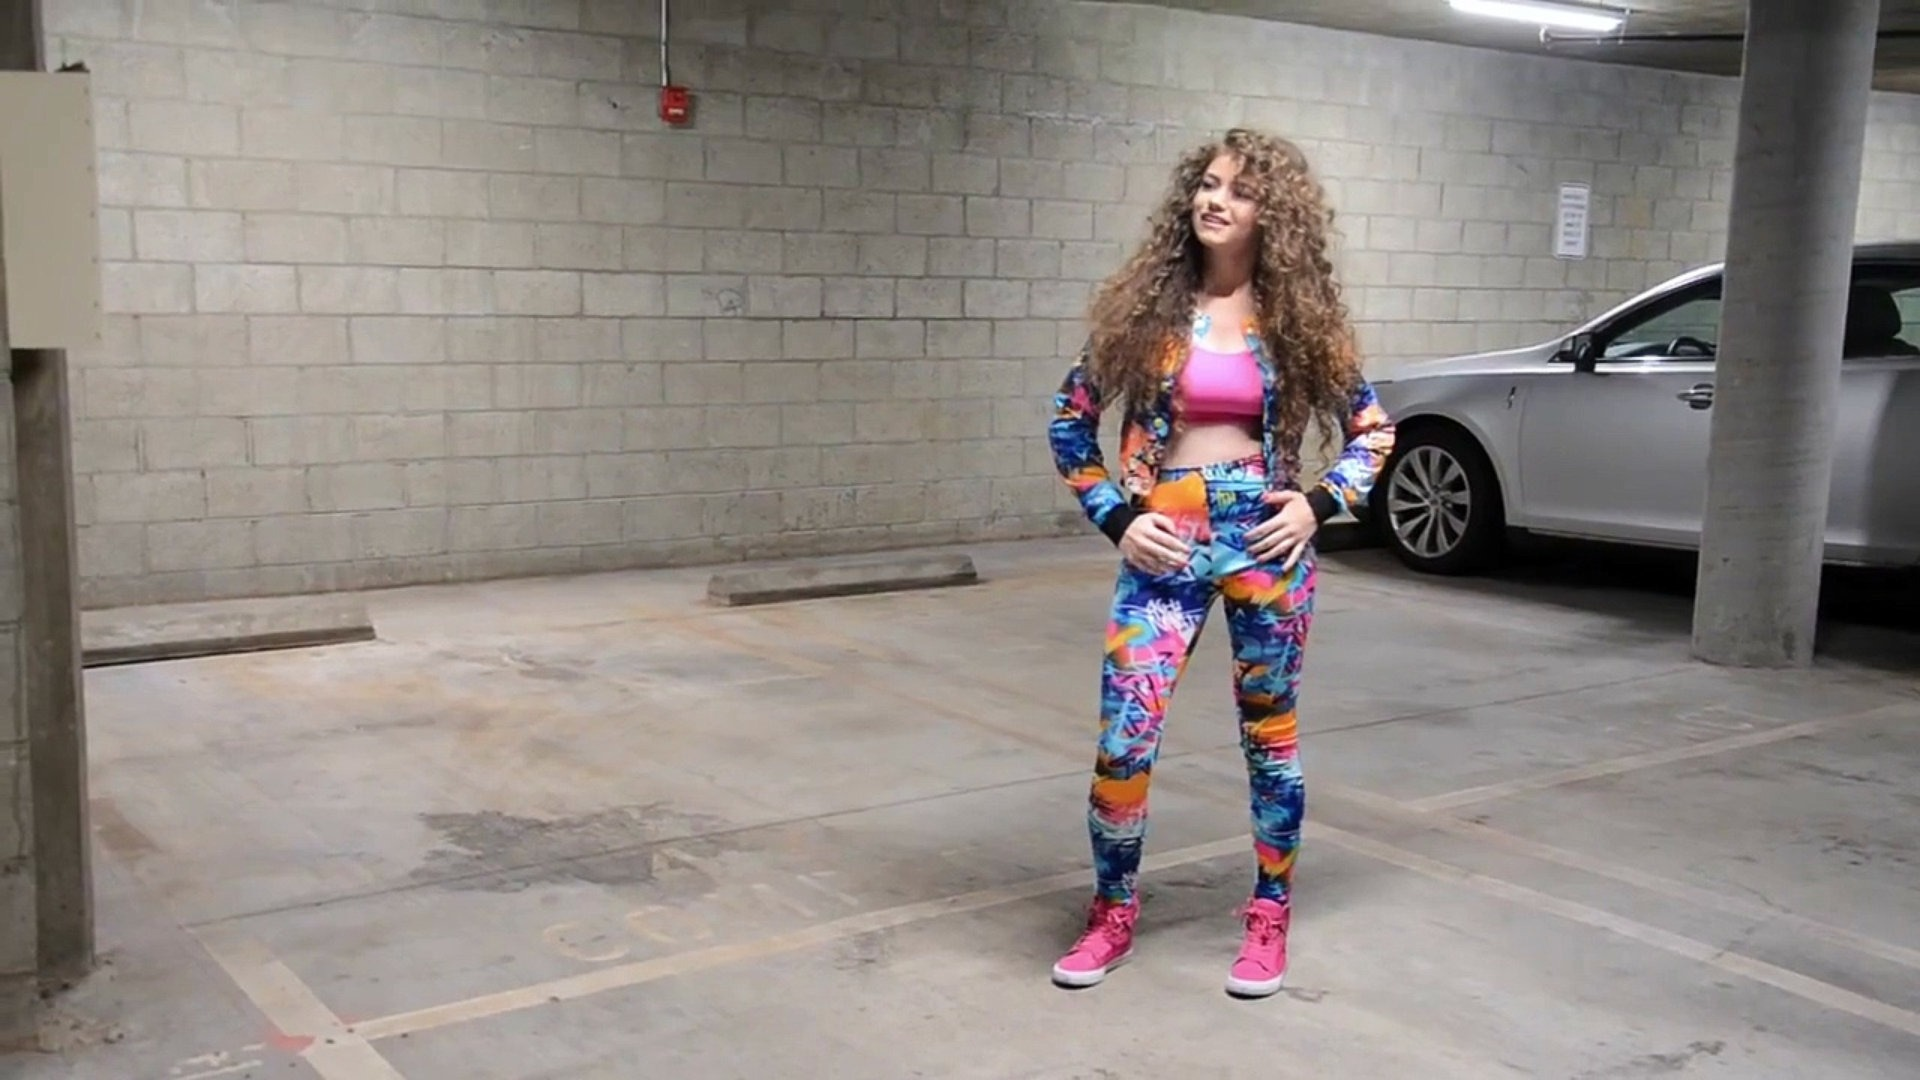 Best of Dytto Dance Videos